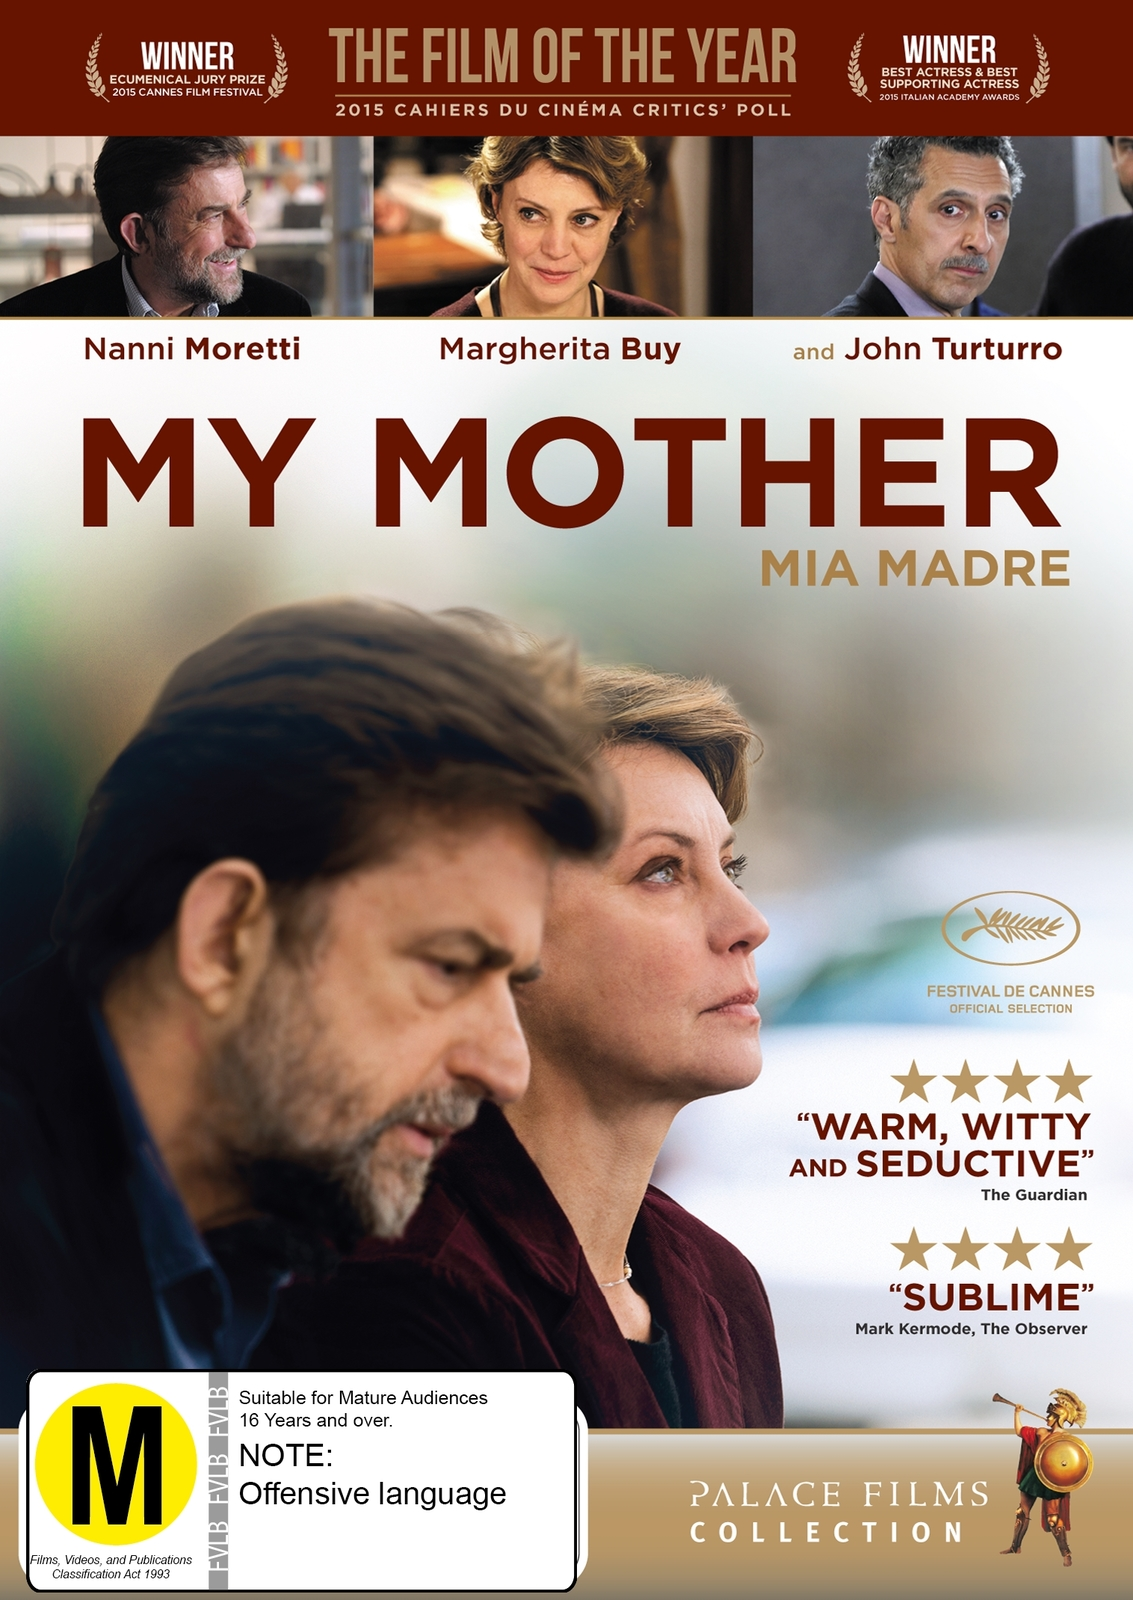 My Mother (Mia Madre) image